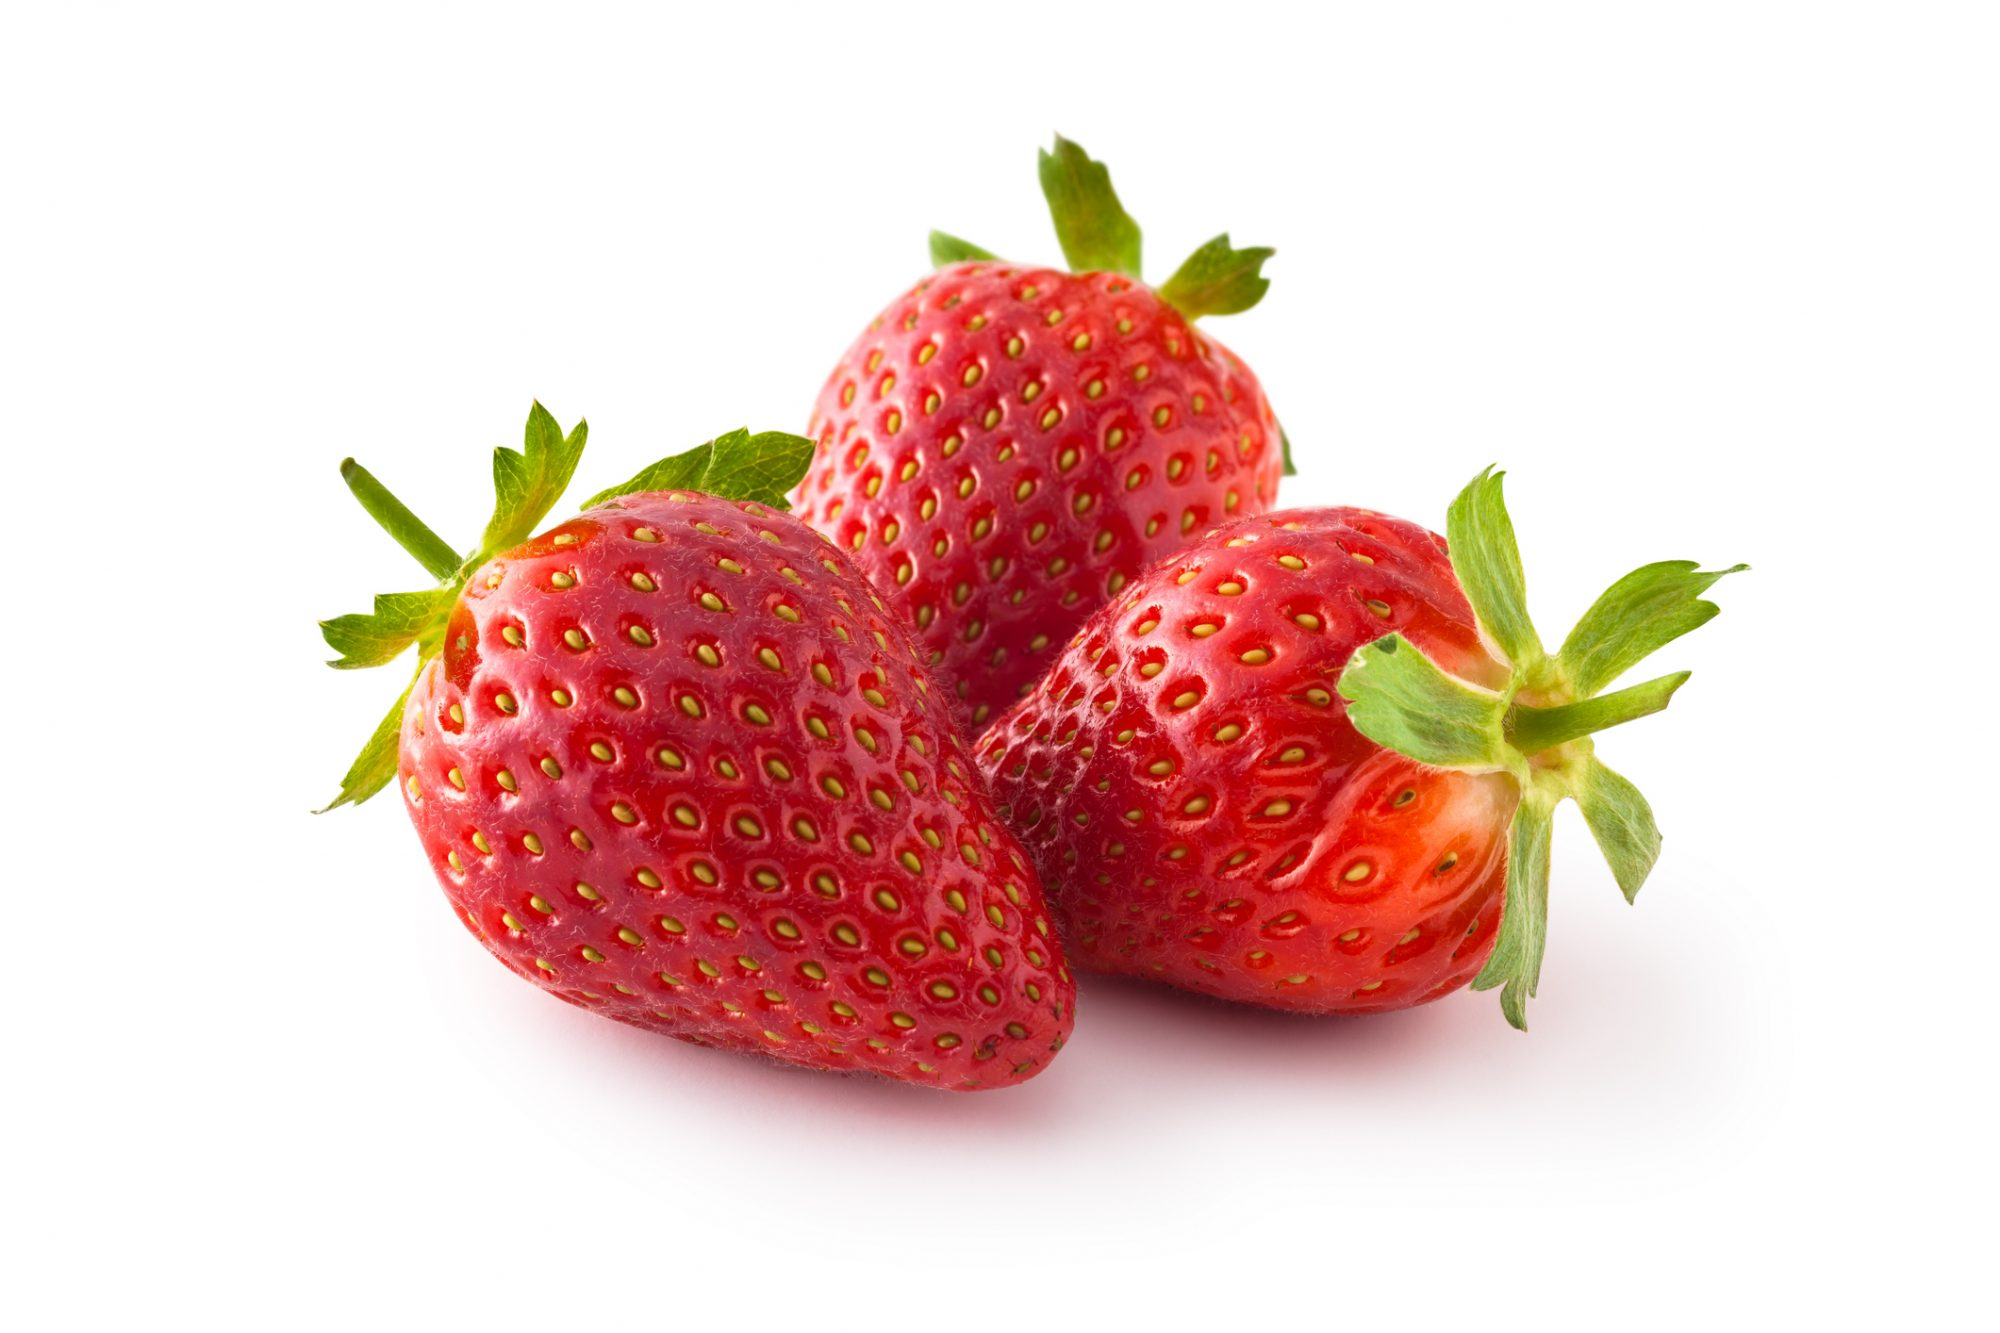 getty-strawberries-image